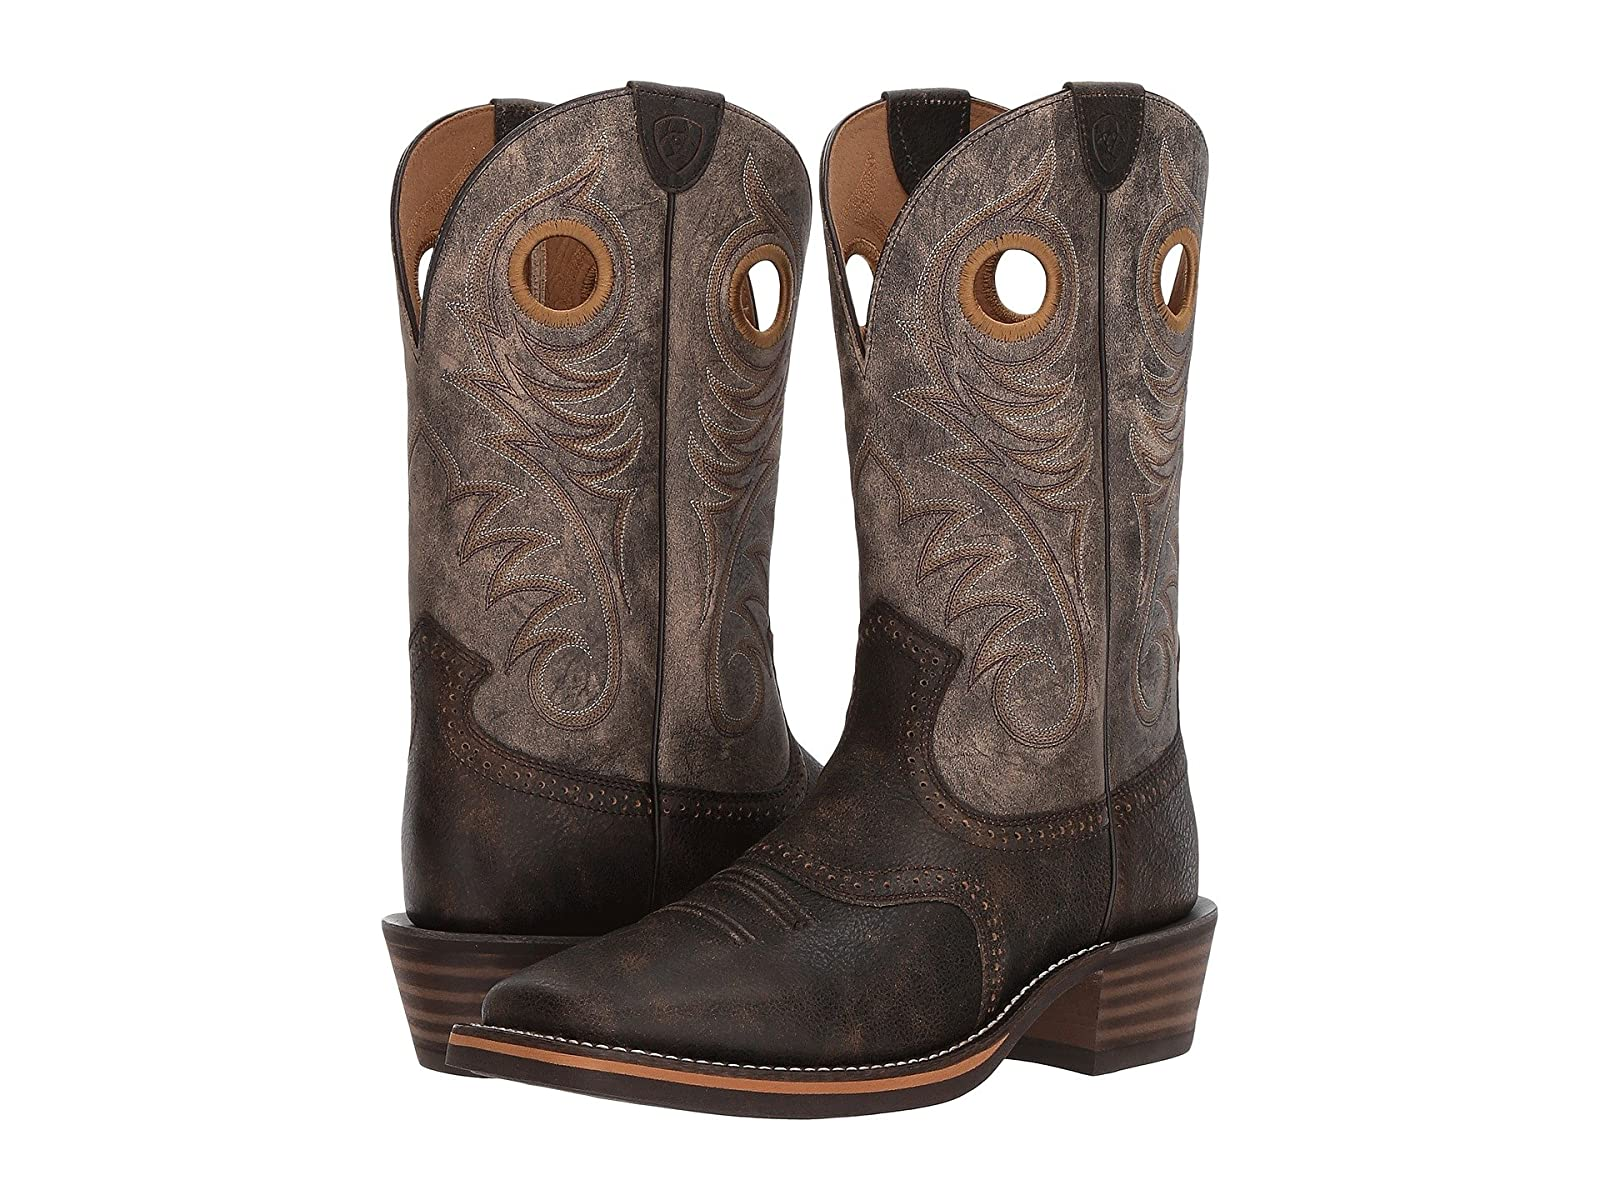 Ariat Heritage Roughstock Wide Square ToeSelling fashionable and eye-catching shoes